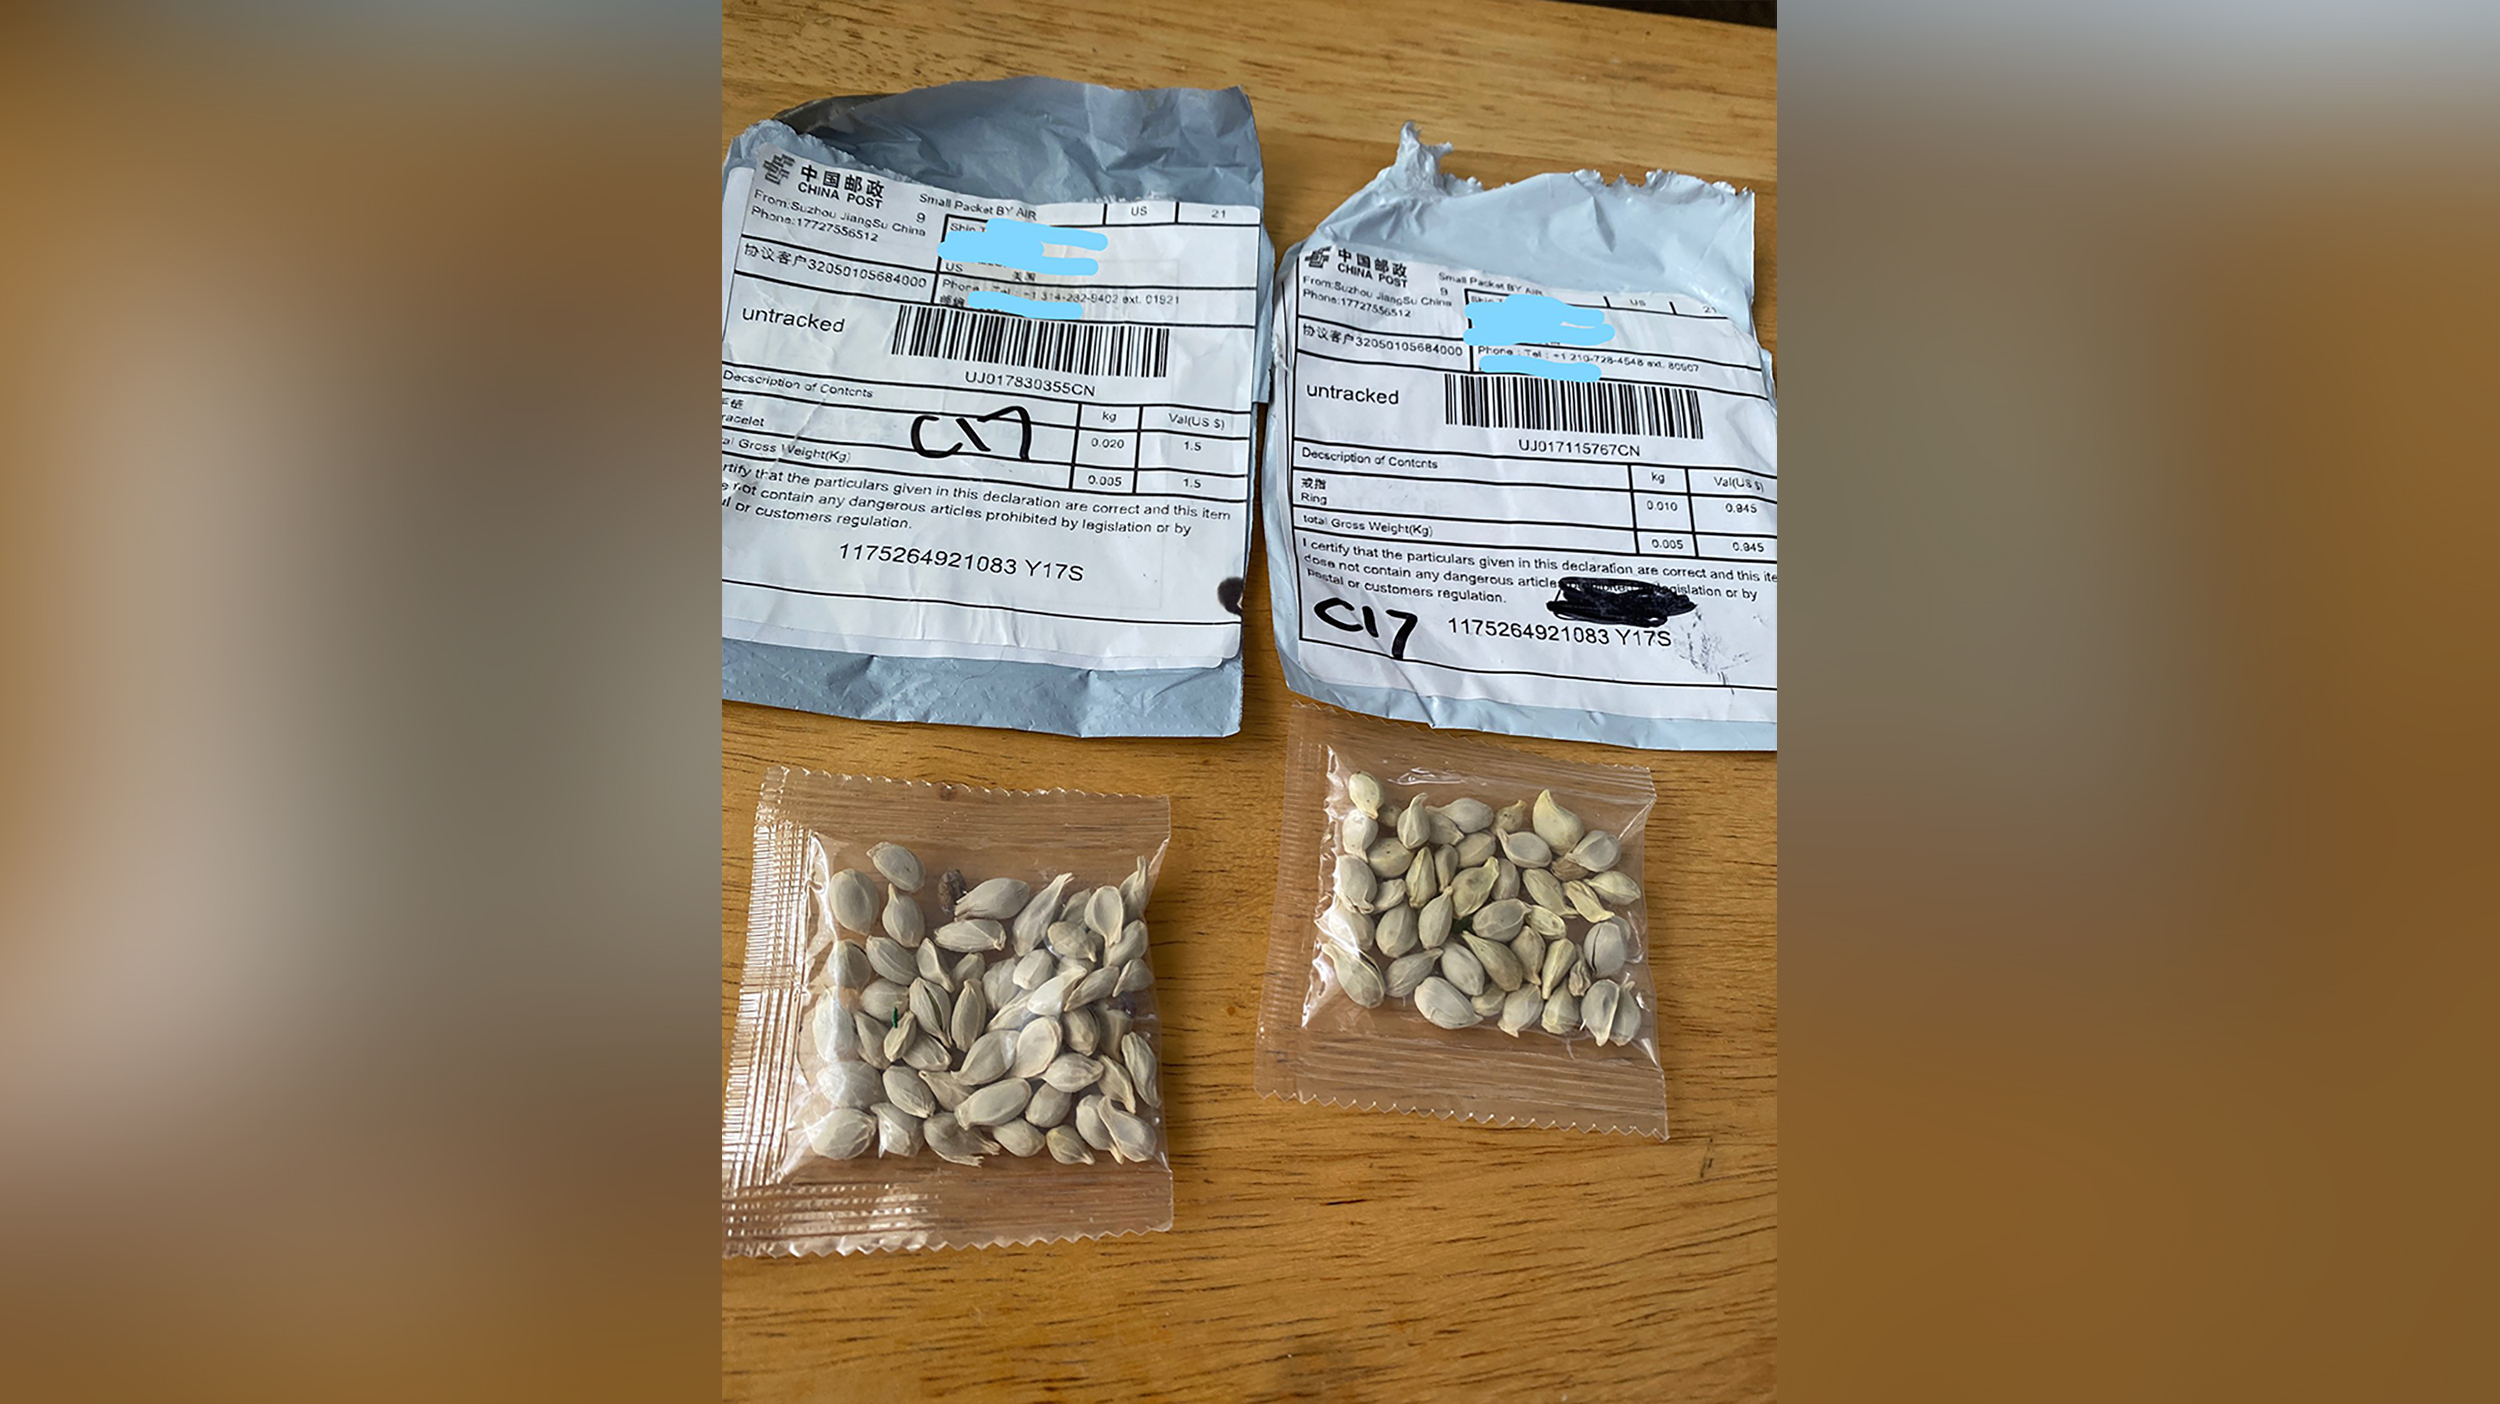 The Washington State Department of Agriculture released this image of packets of seeds in July 2020.